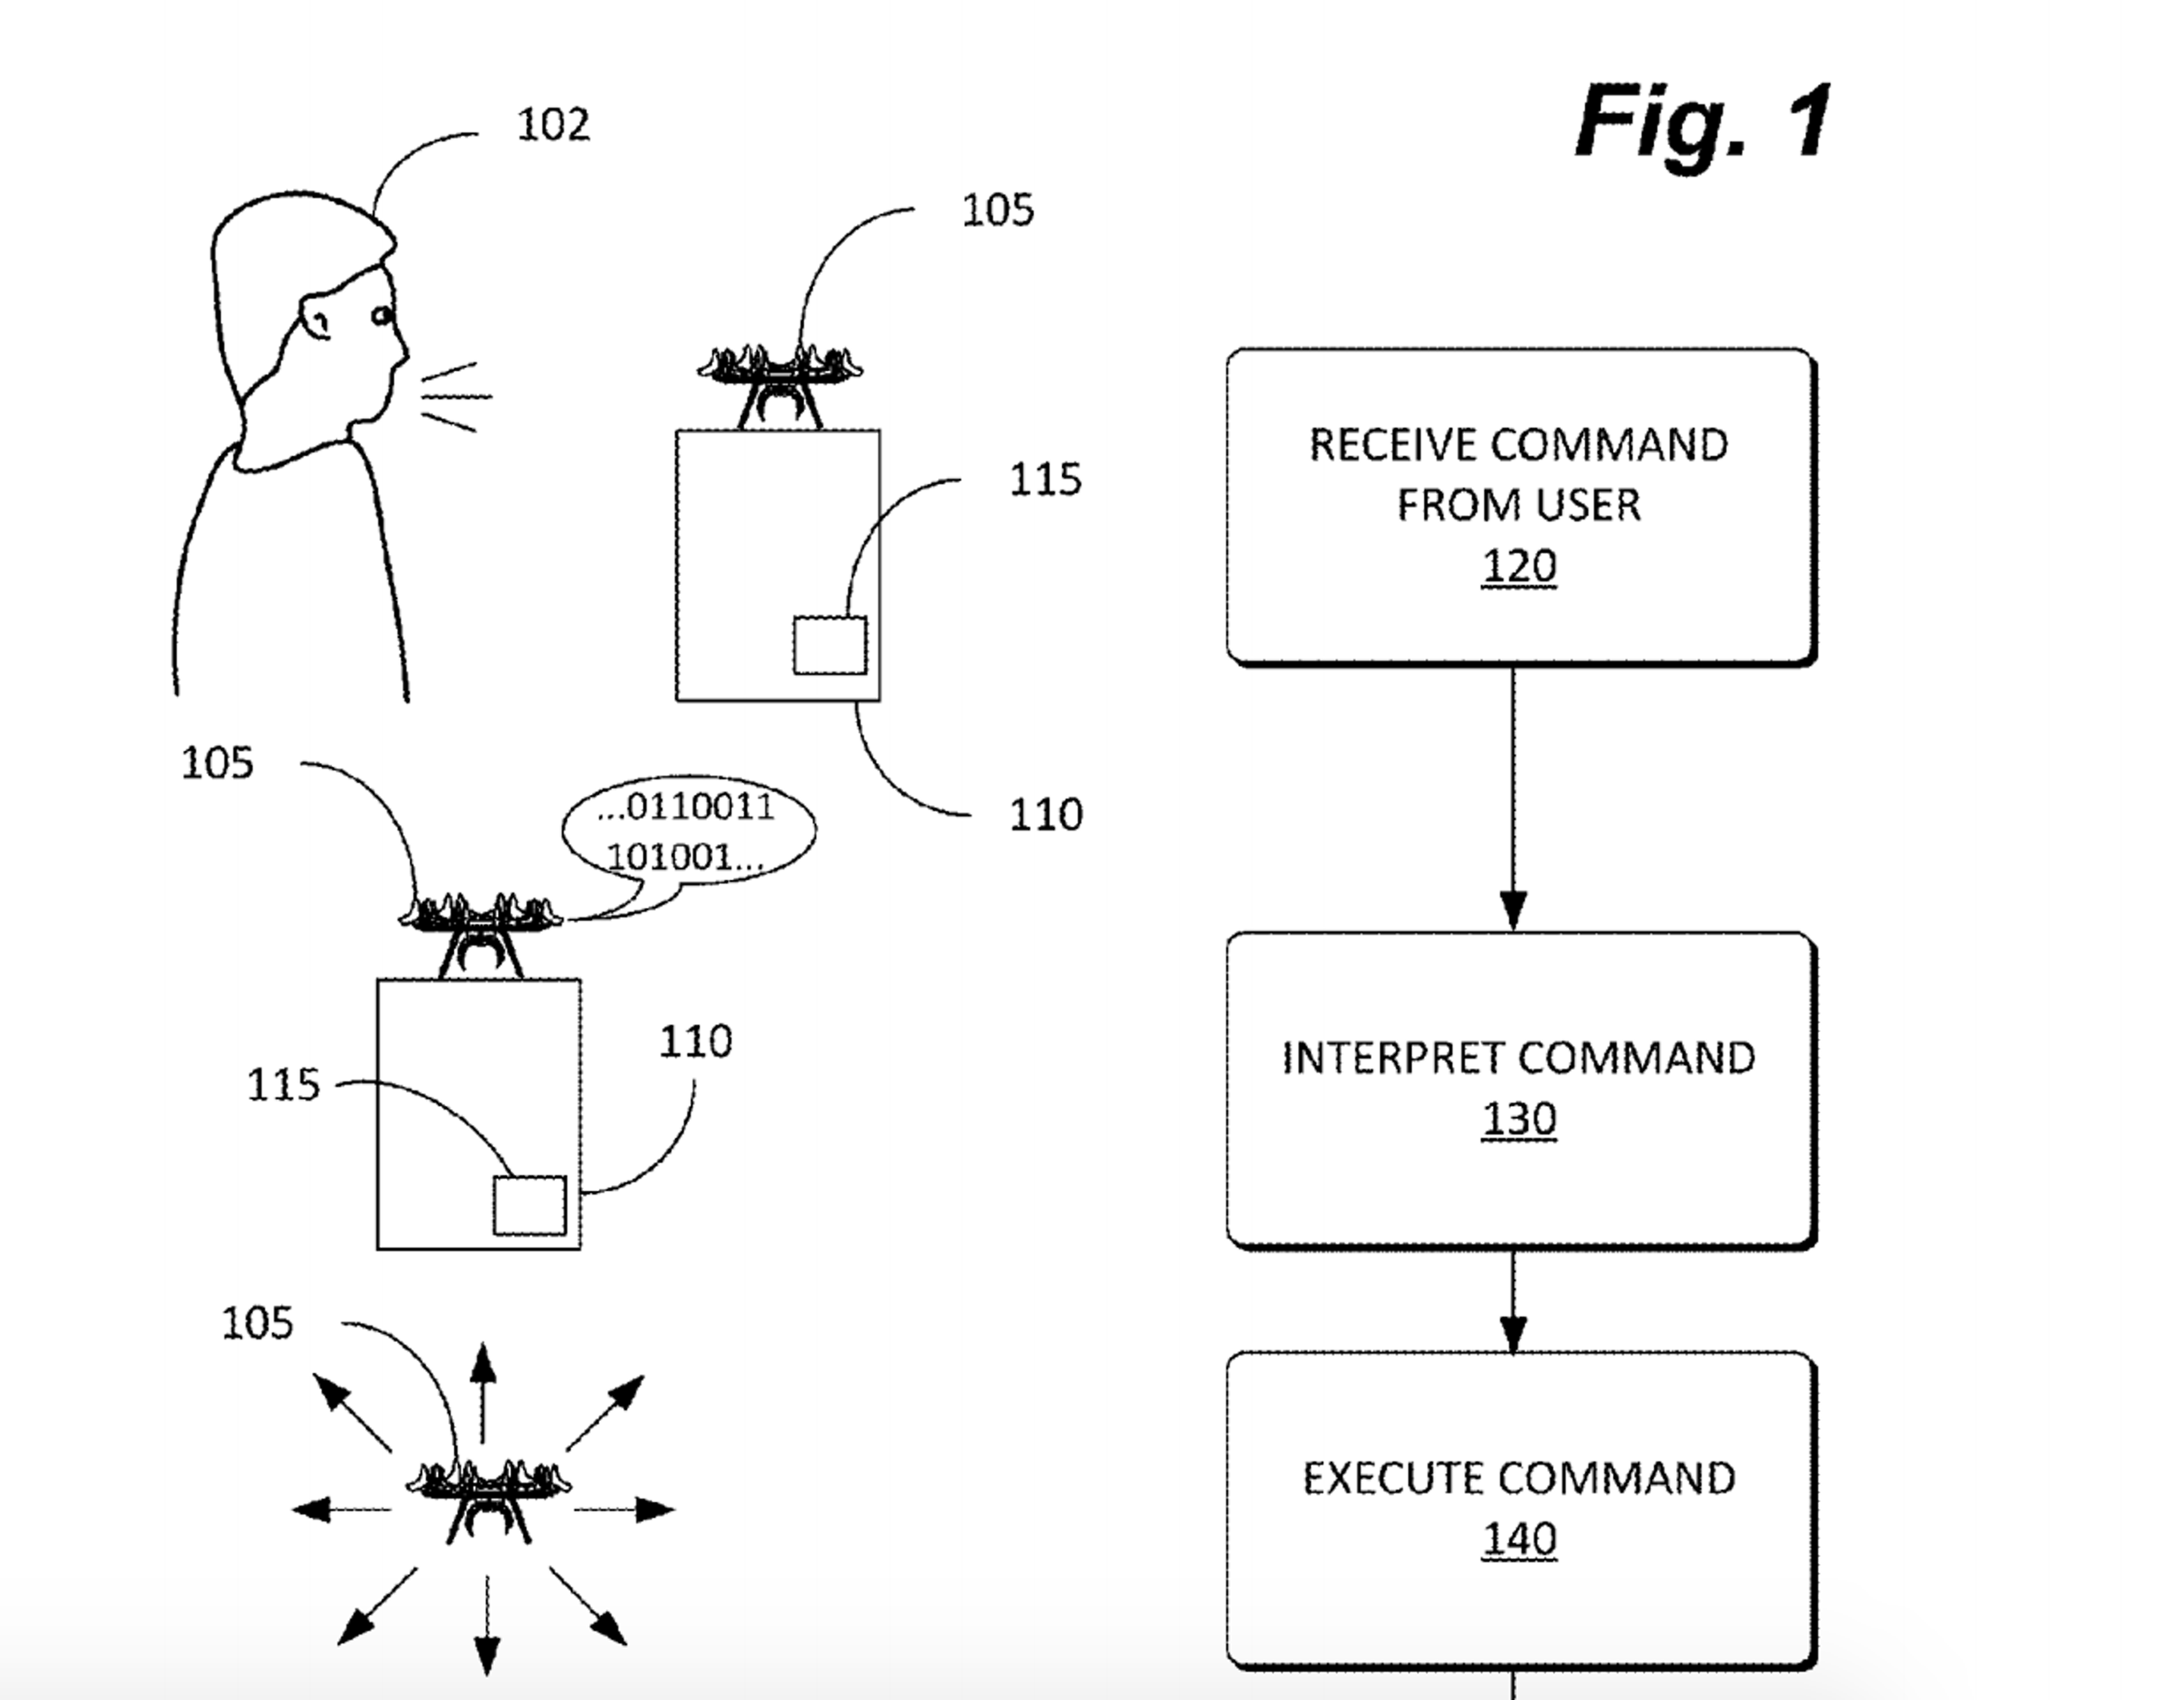 A portion of a drawing from Amazon's patent filing for pocket-sized, voice-controlled drones shows how the system would work.